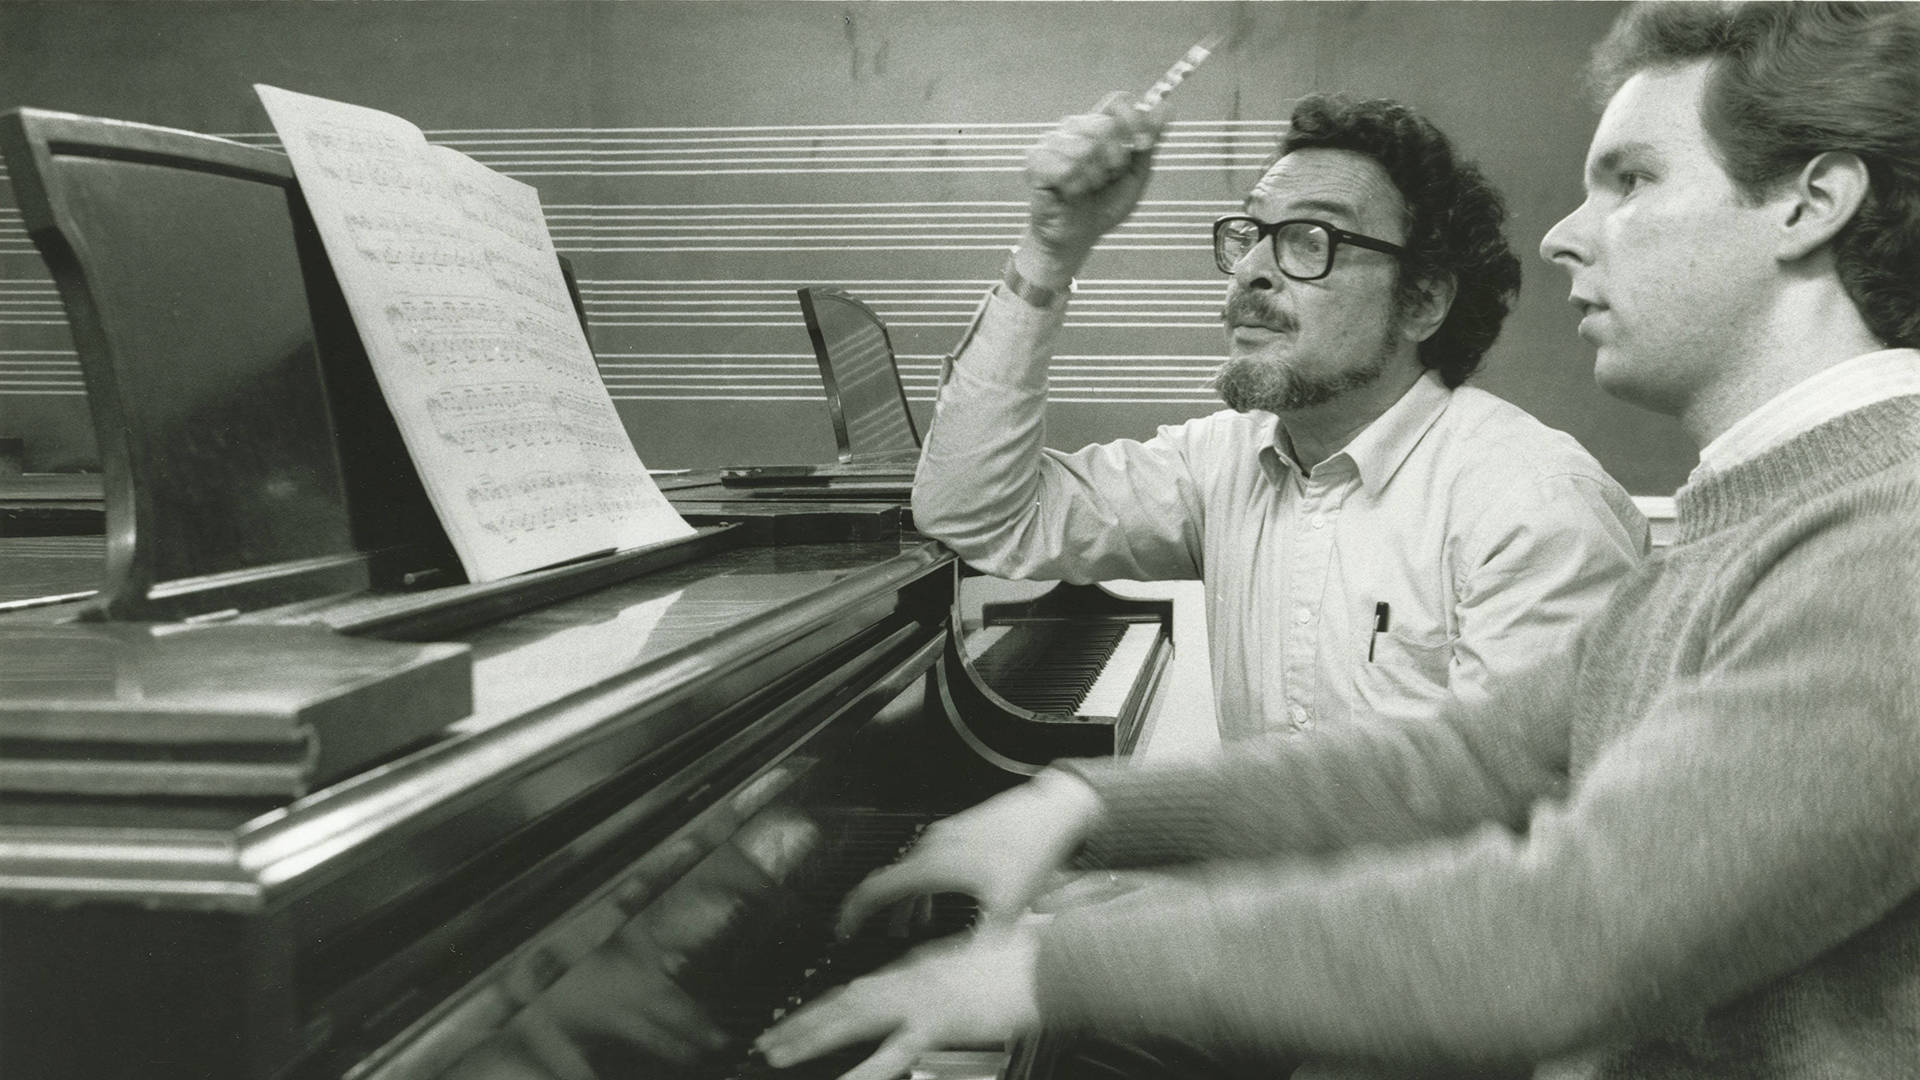 Leon Fleisher has been a faculty member of the Peabody Institute at Johns Hopkins University since 1959. Courtesy of Johns Hopkins University